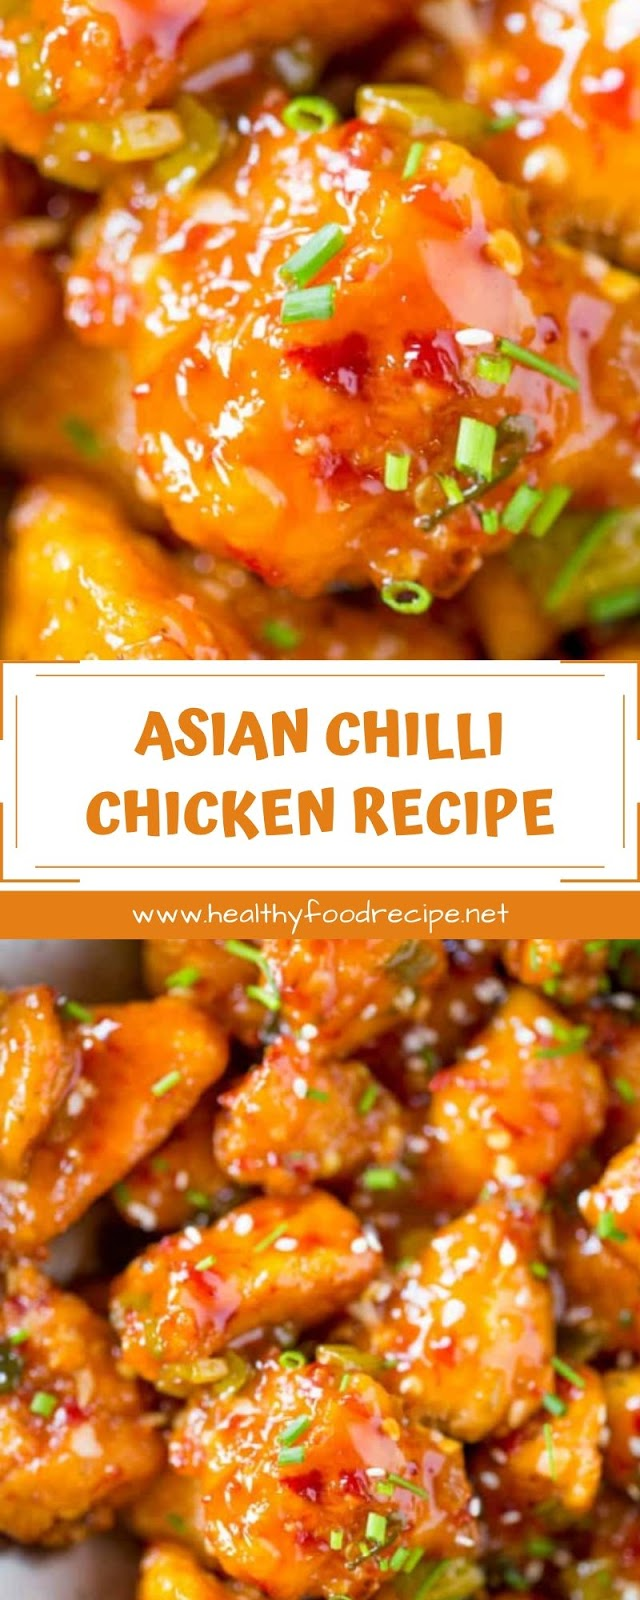 ASIAN CHILLI CHICKEN RECIPE